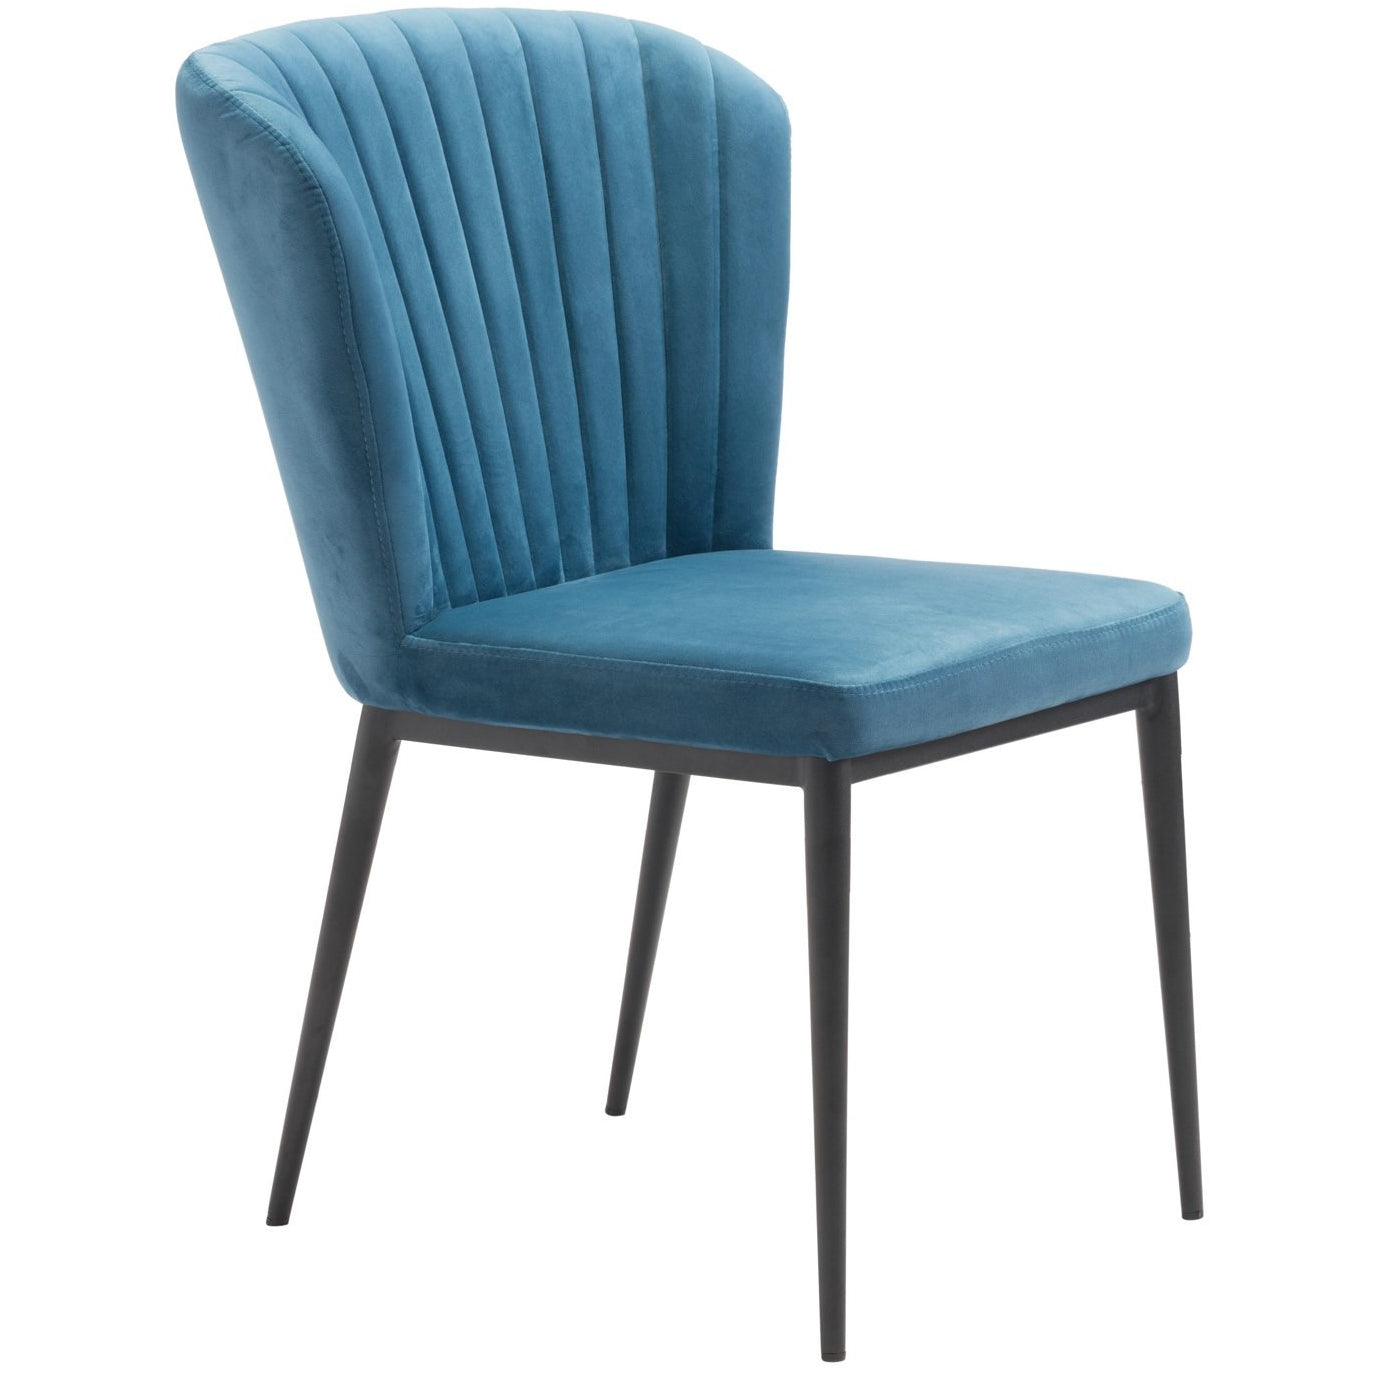 Zuo Modern Tolivere Dining Chair Blue Velvet | Set Of 2 - 101102 Zuo Modern-Dining Chairs-Minimal And Modern Canada - 1